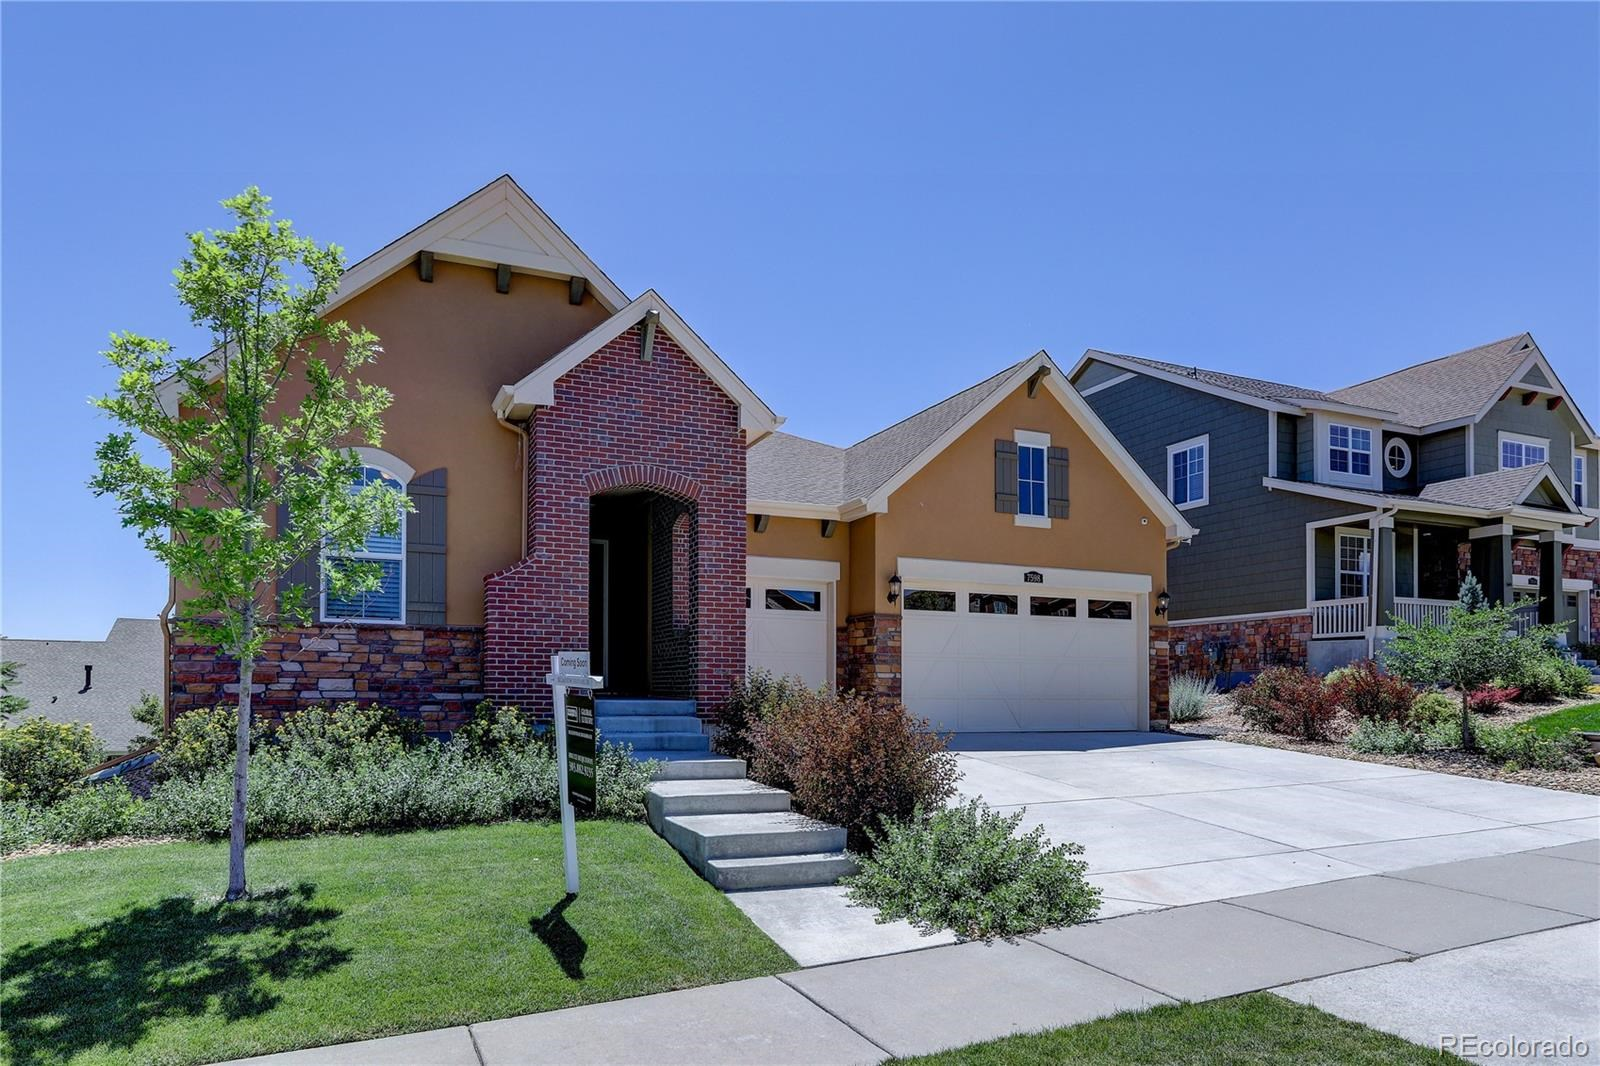 MLS# 8545425 - 1 - 7598 S Country Club Parkway, Aurora, CO 80016